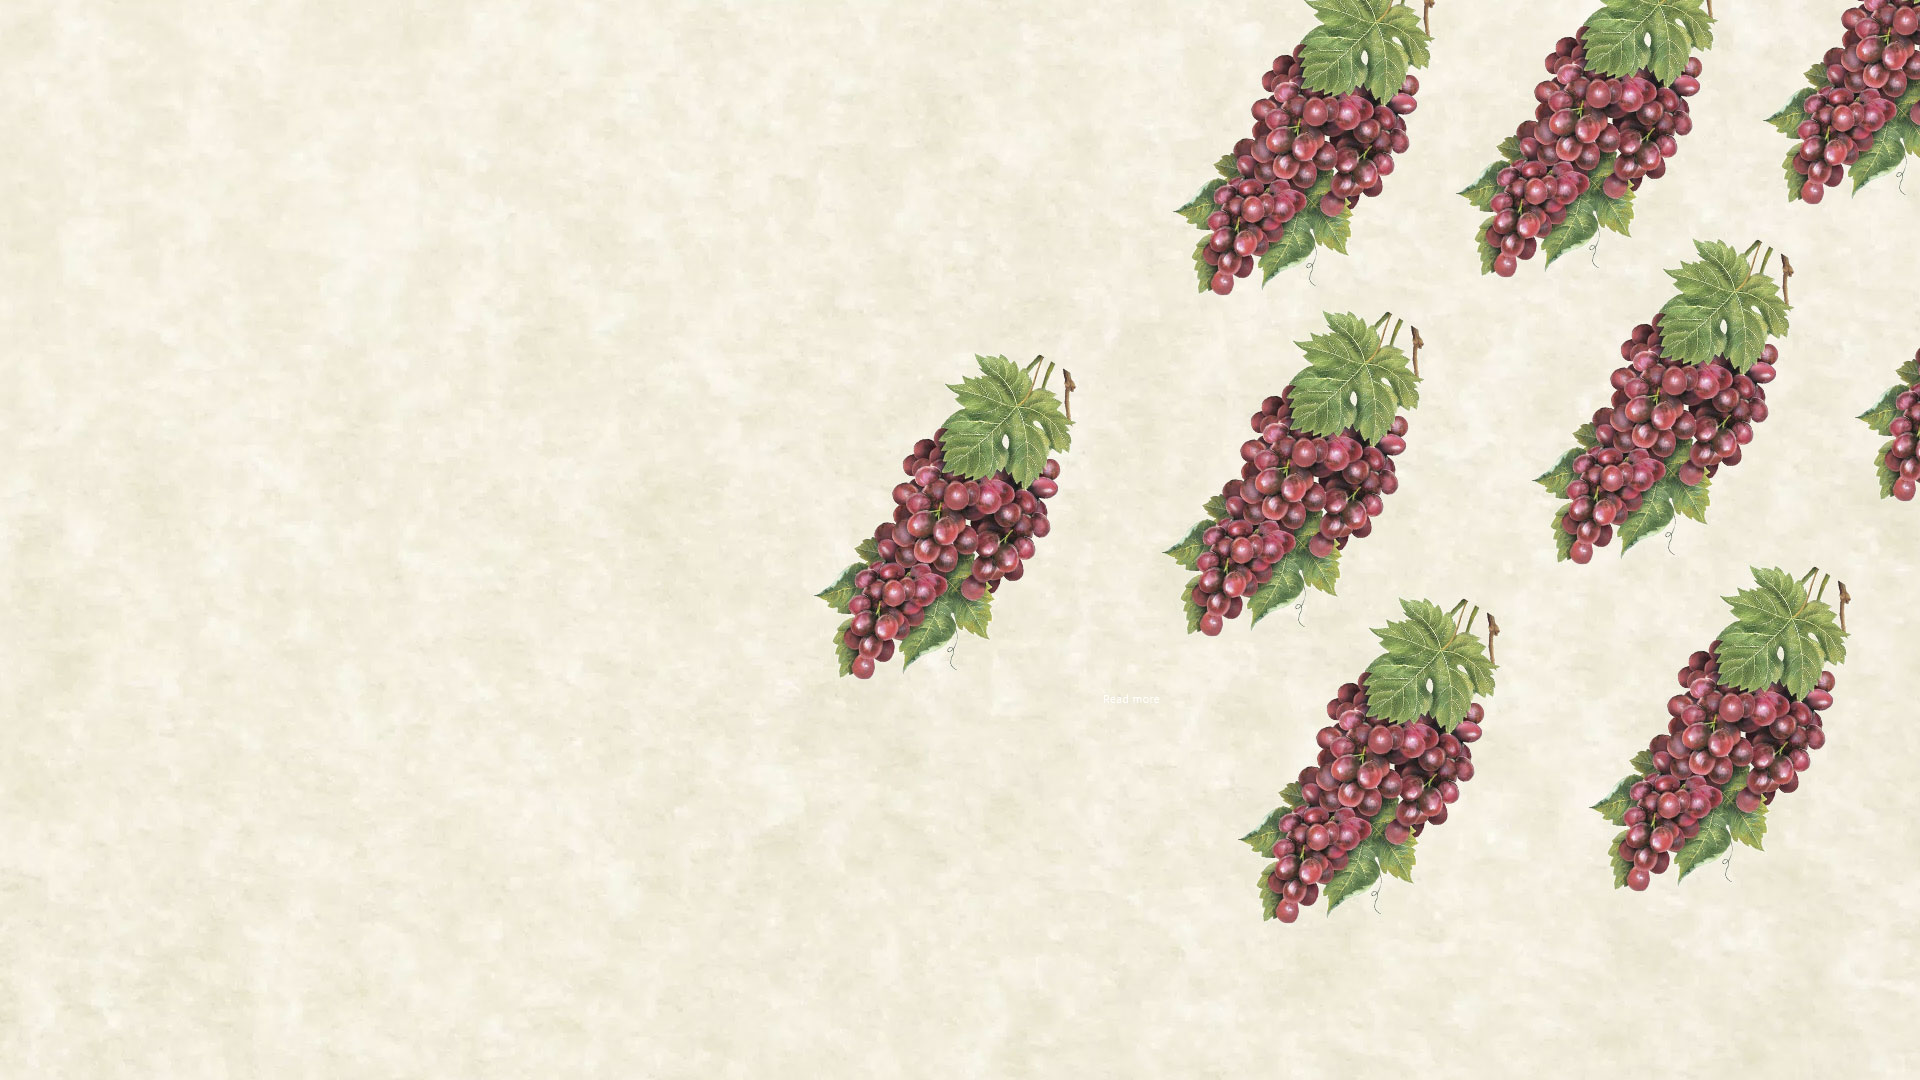 Delight Red Grapes